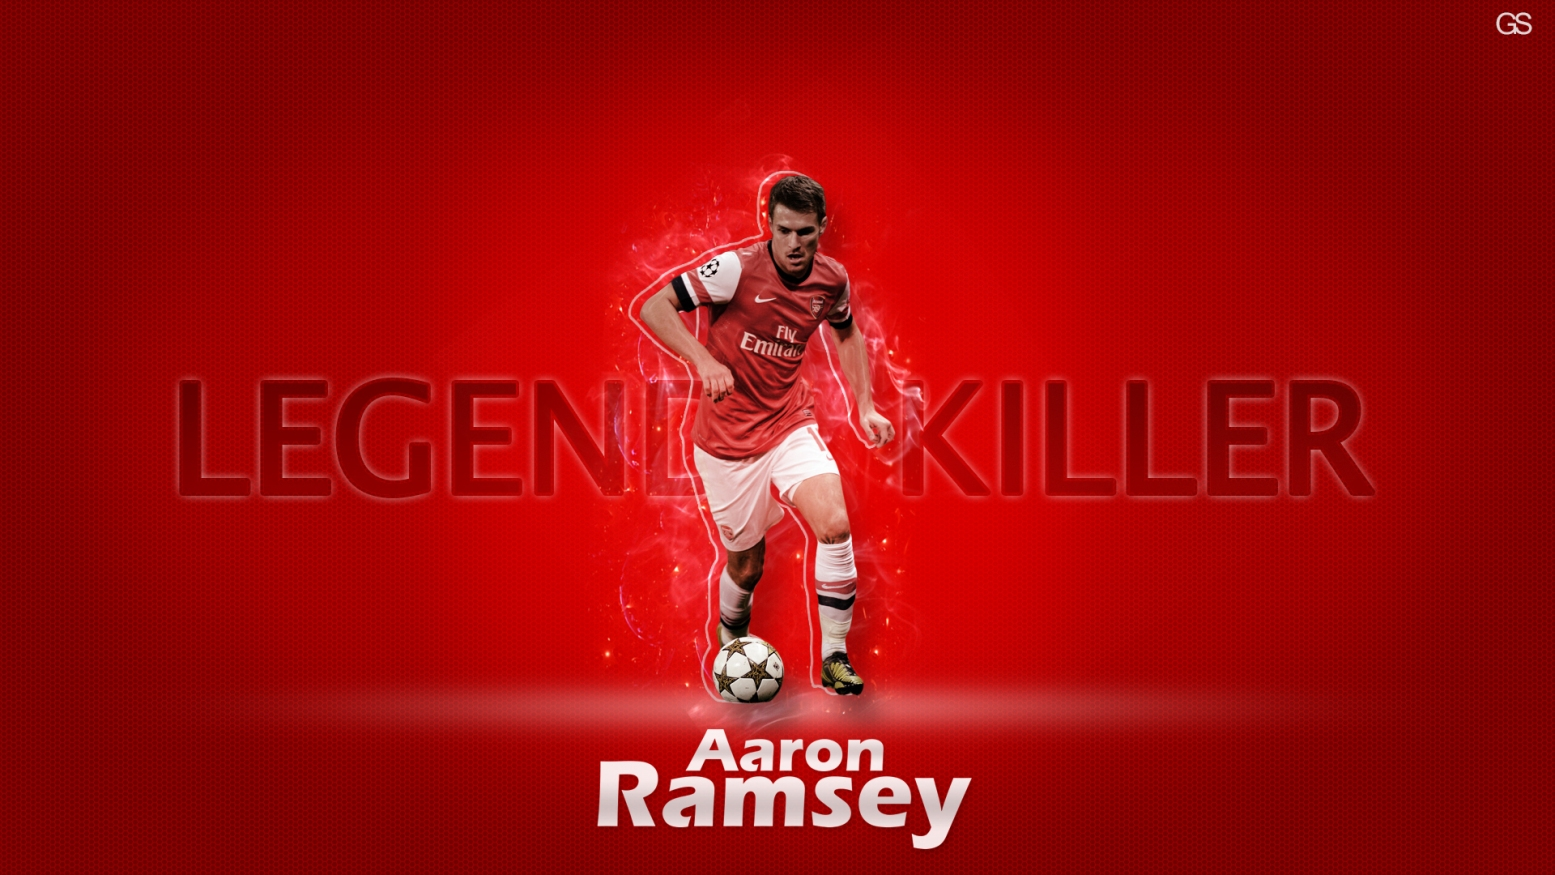 Aaron Ramsey HD Wallpaper